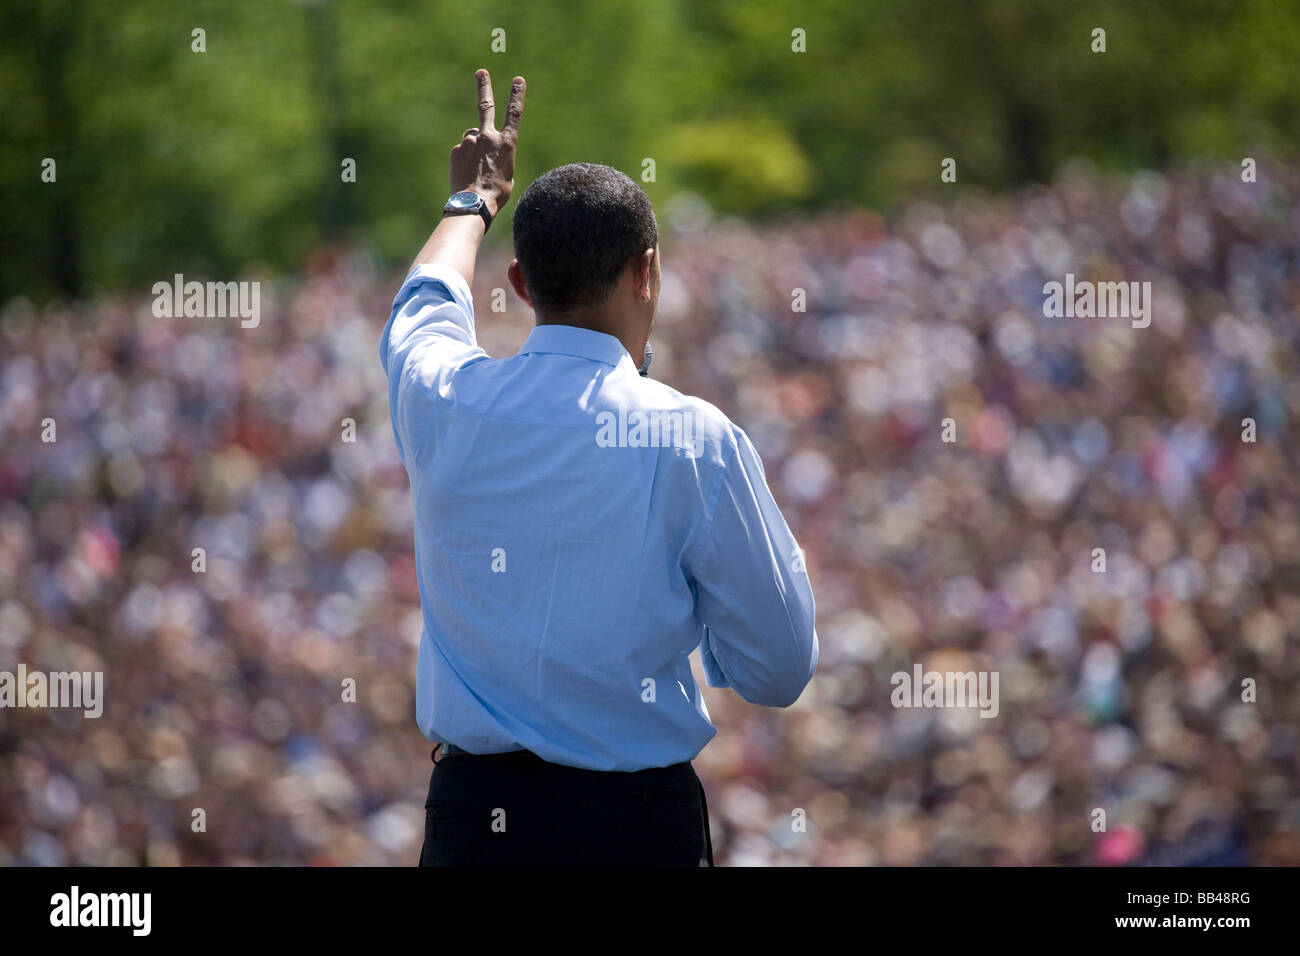 Presidential candidate and Democratic front runner, Barack Obama, gestures the number two (2) or peace sign in front - Stock Image